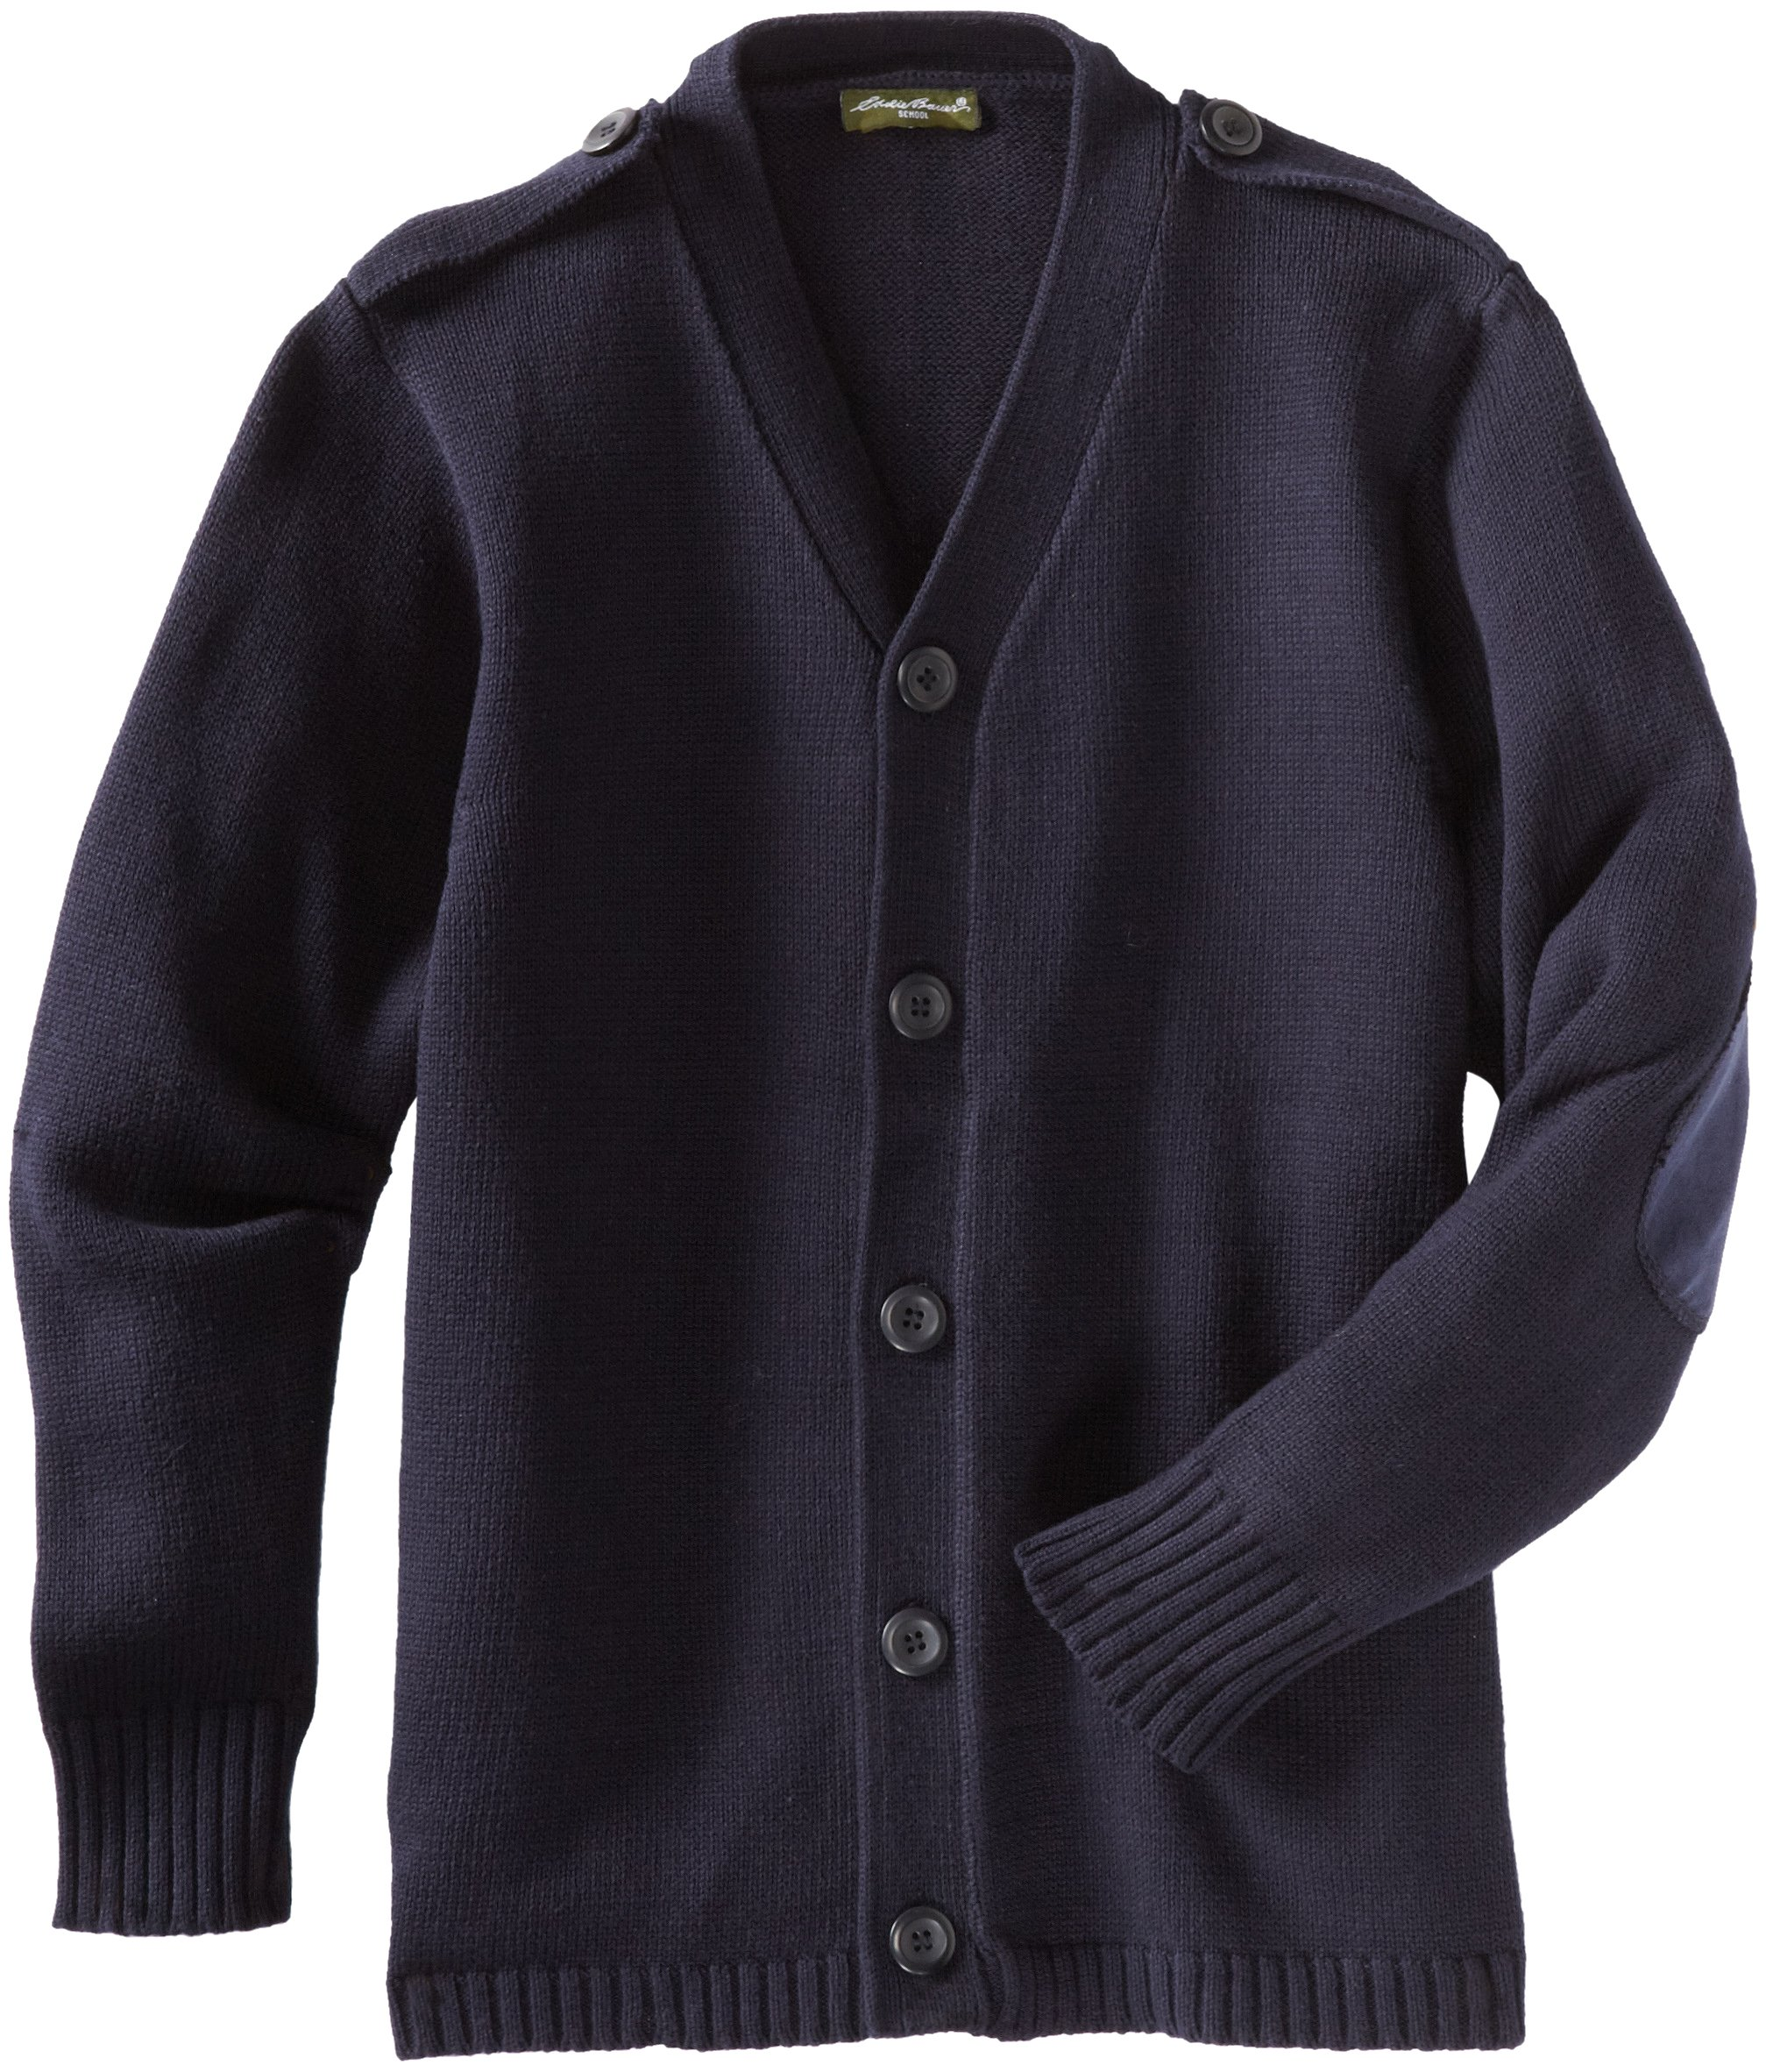 Eddie Bauer Boys' Sweater (More Styles Available), Basic Navy, 10/12